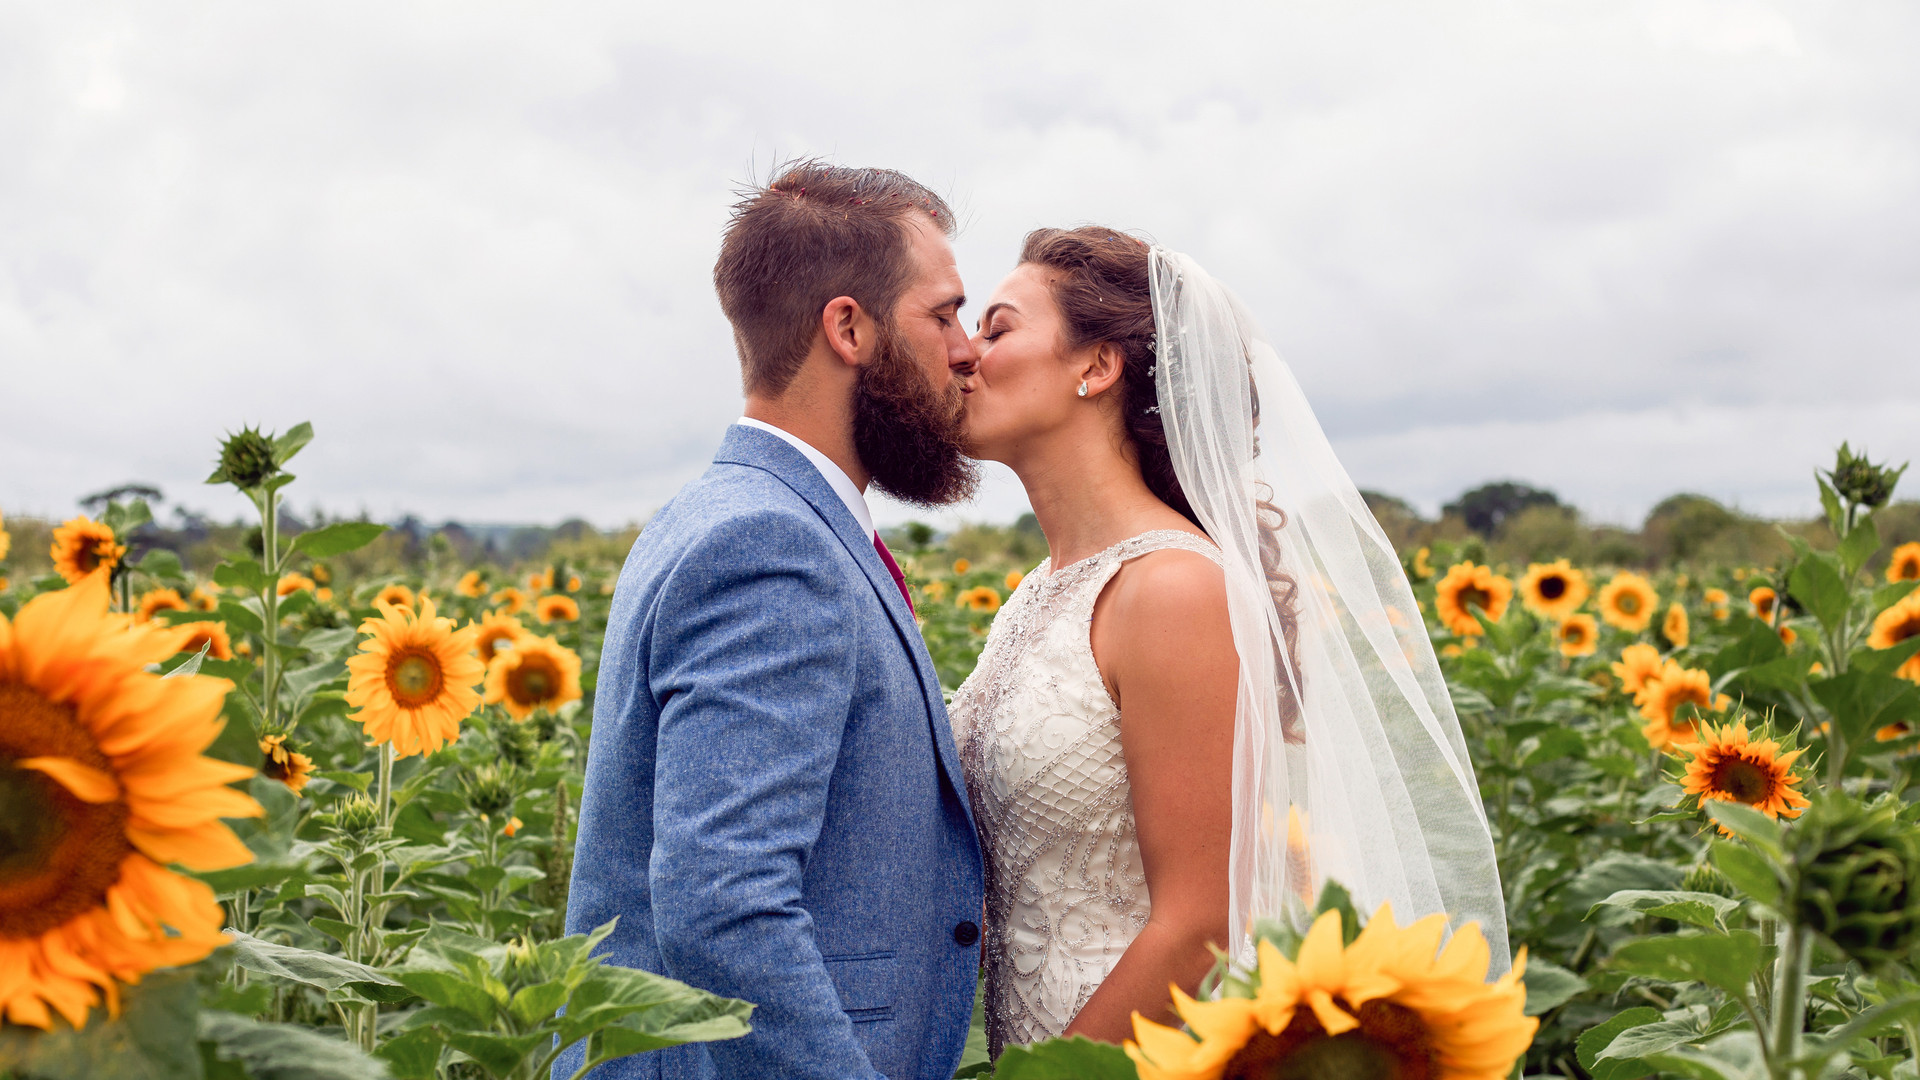 Sunflower wedding kiss